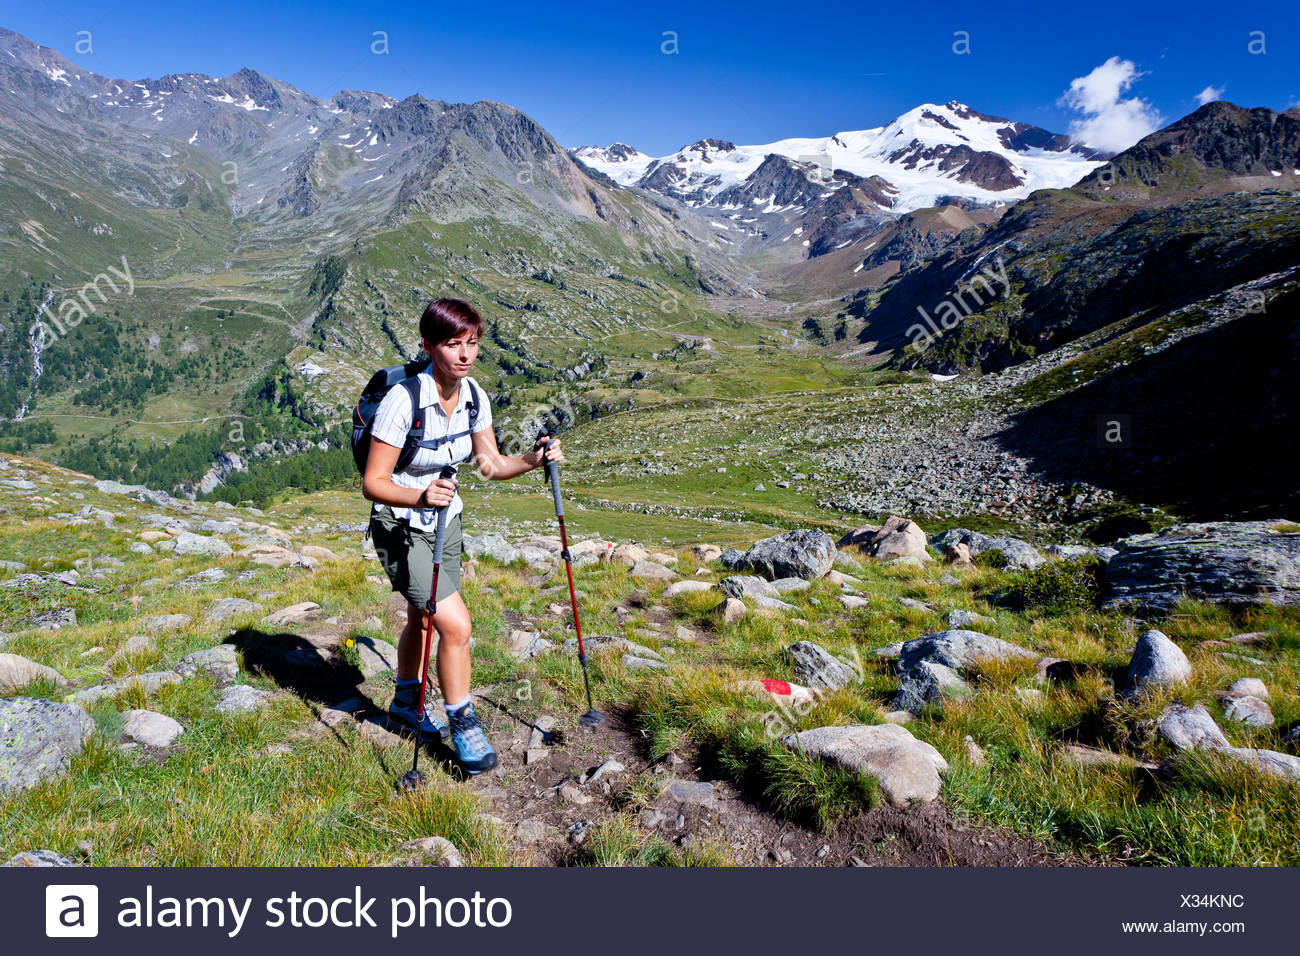 Hiker ascending to Mt. Rotspitz in the Martell vally, behind Mt. Cevedale and Mt. Zufallspitz, South Tyrol, Italy, Europe - Stock Image